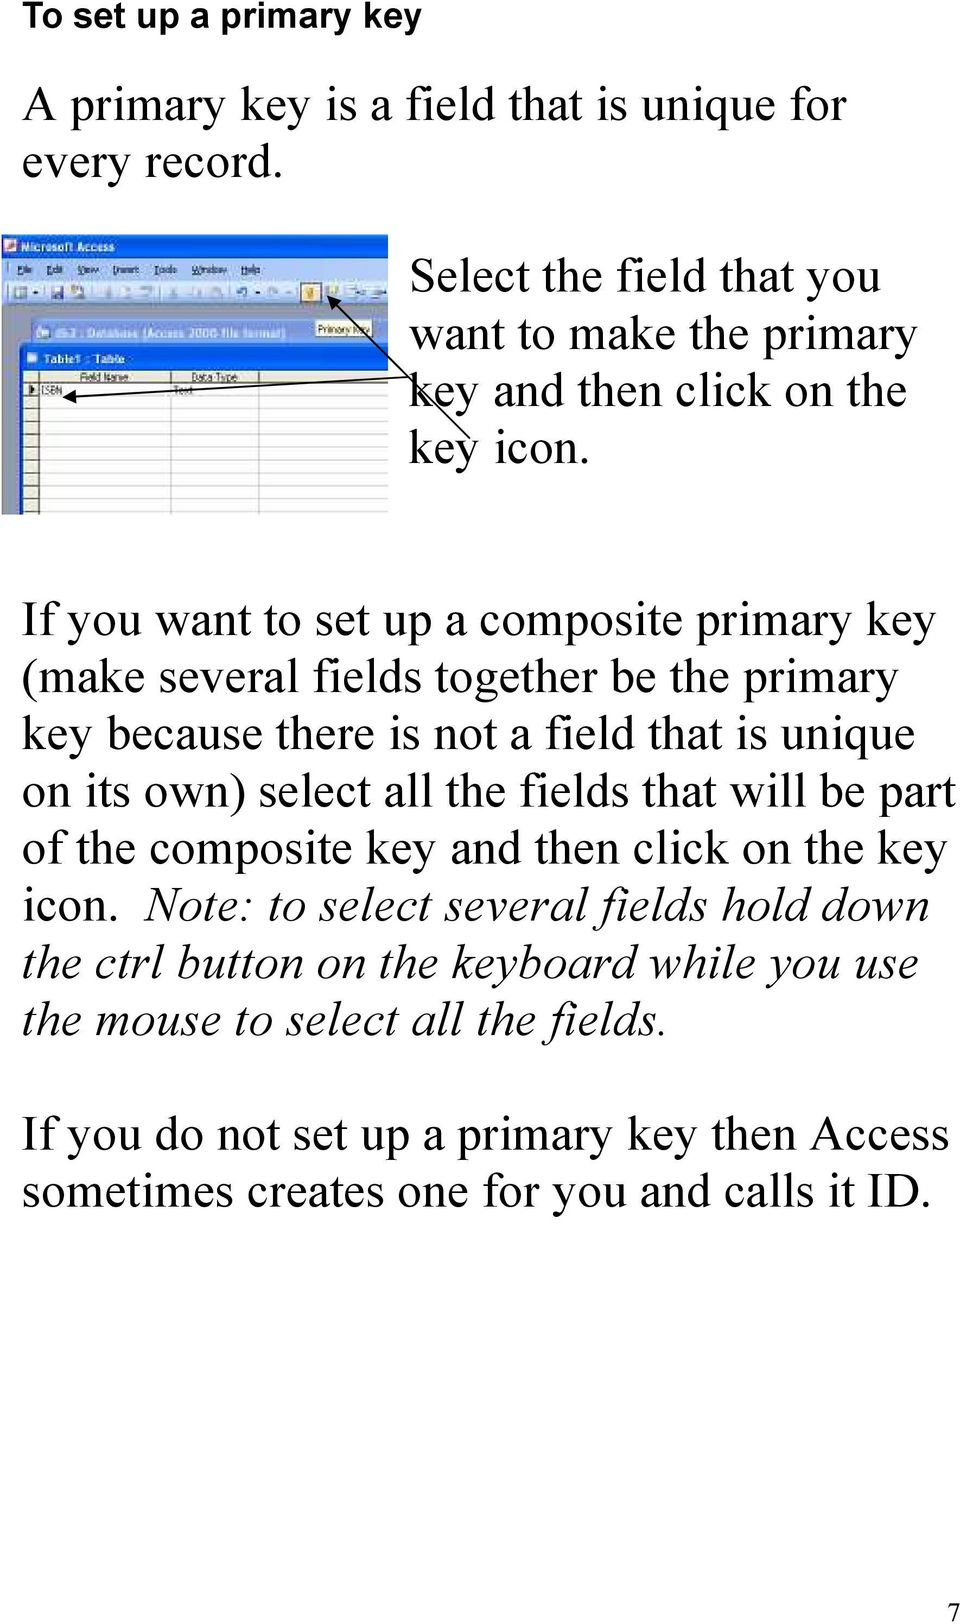 If you want to set up a composite primary key (make several fields together be the primary key because there is not a field that is unique on its own) select